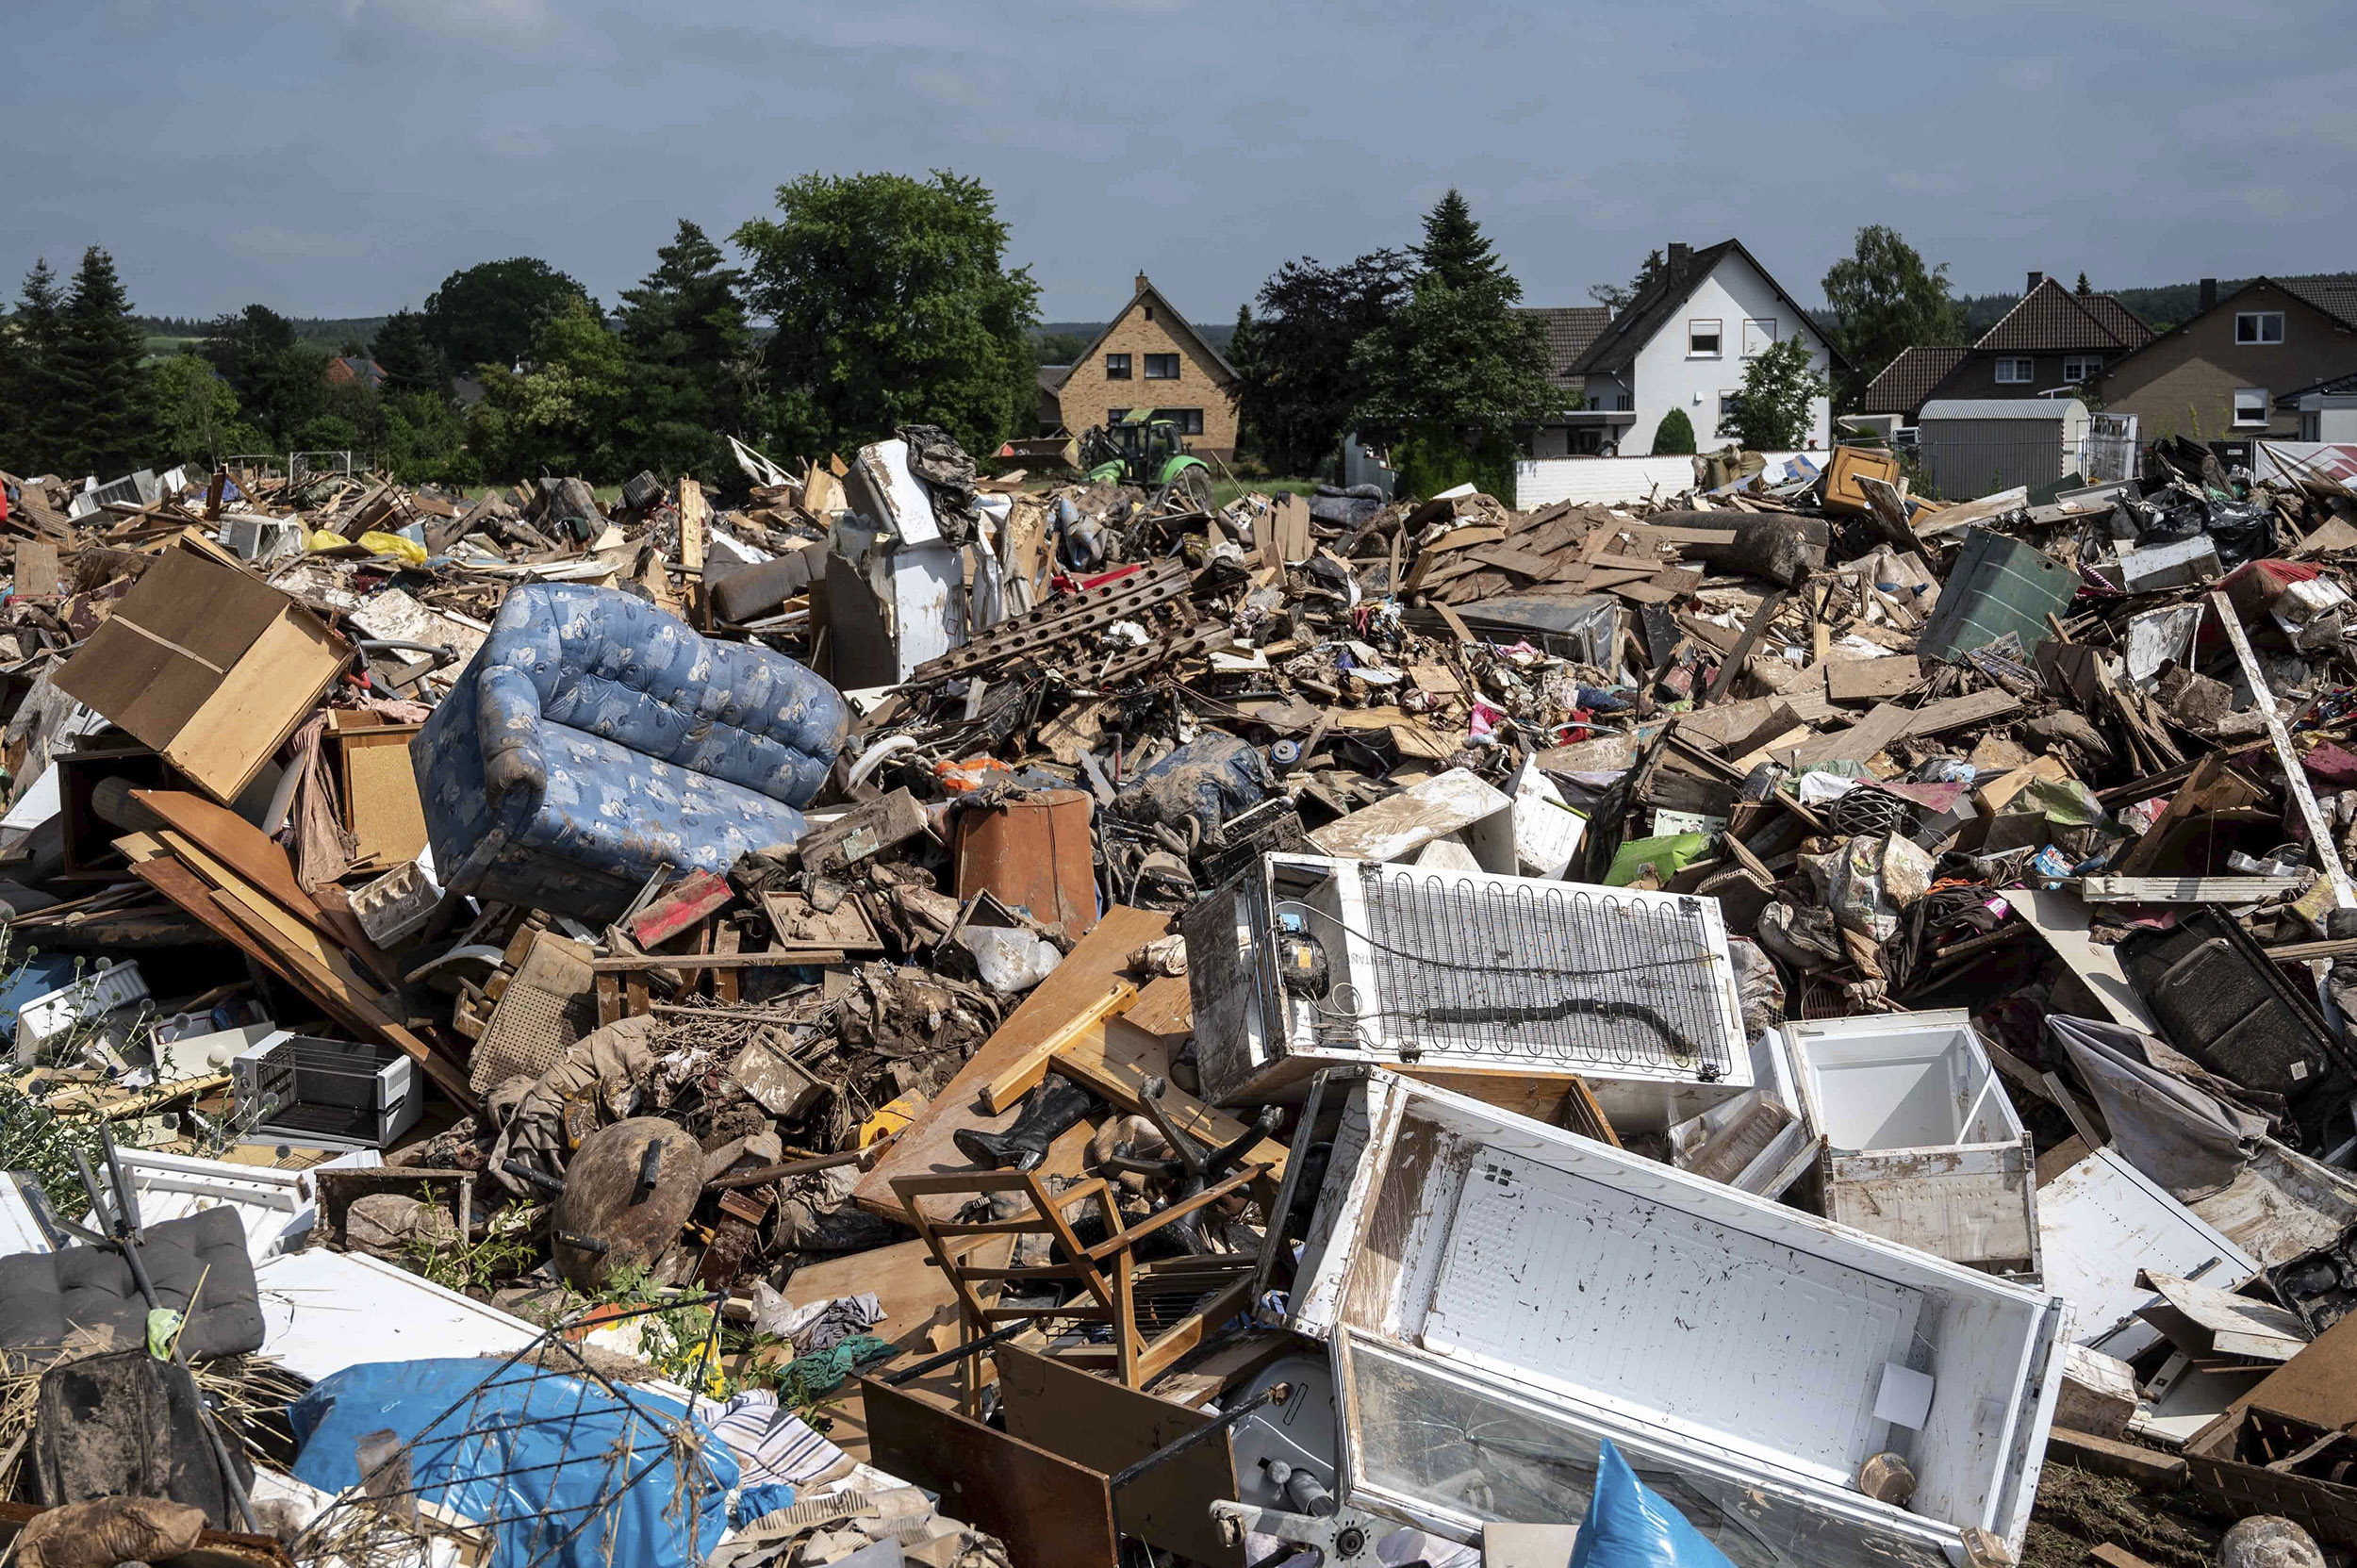 How could this happen here? With rising deaths German floods force tough questions